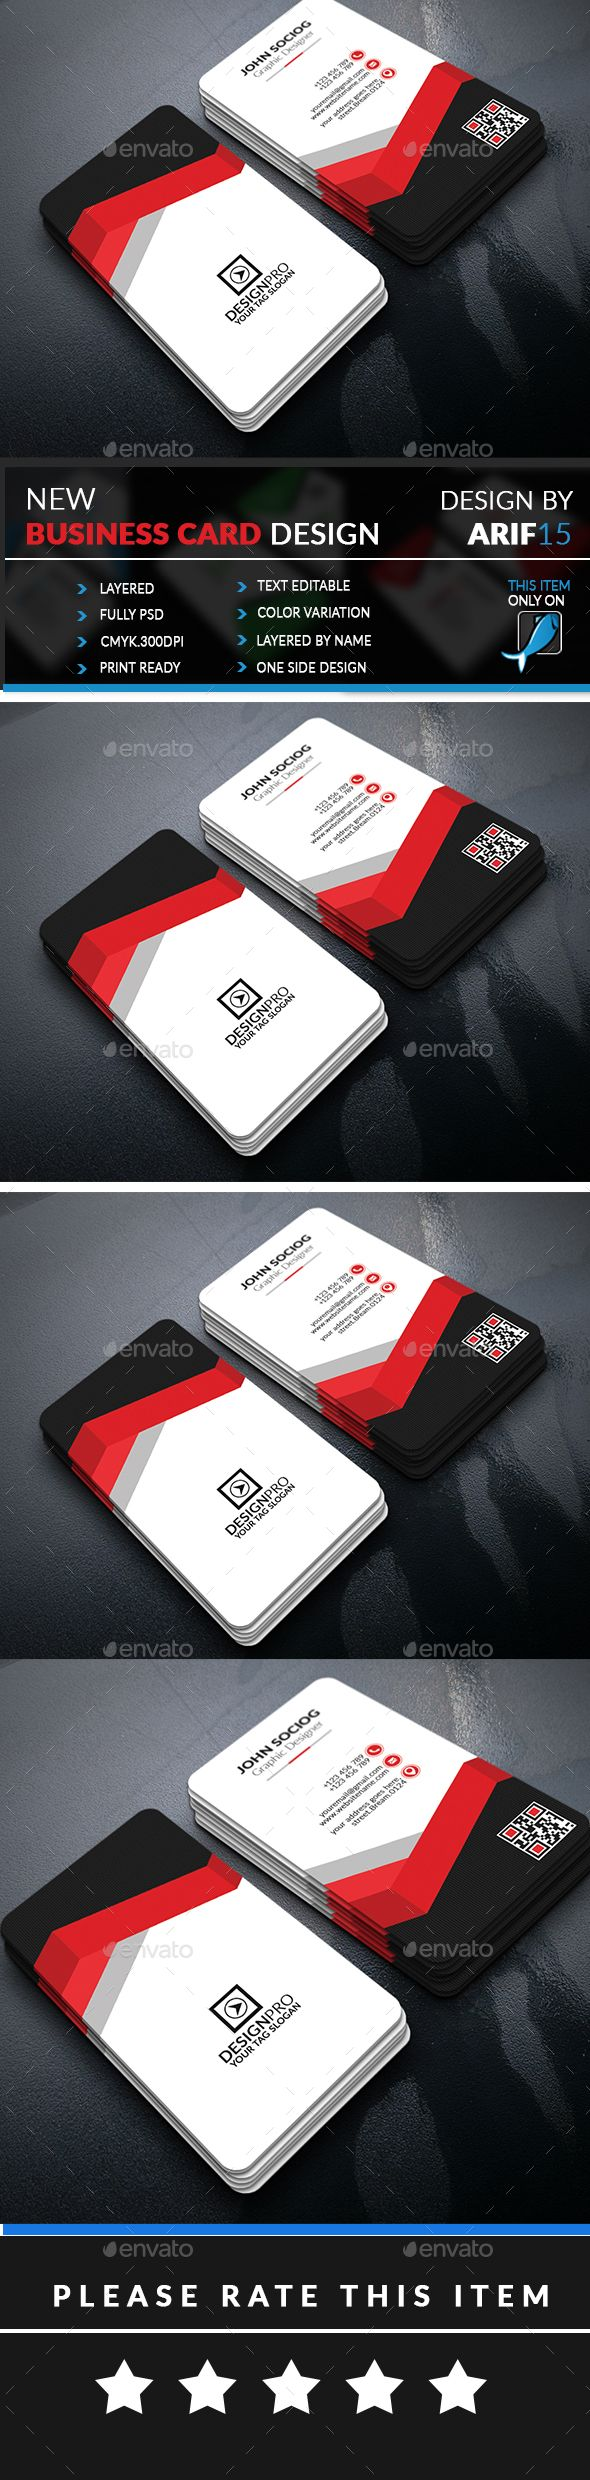 Beautiful Buy Business Cards Ideas On Pinterest Corporate - Buy business card template